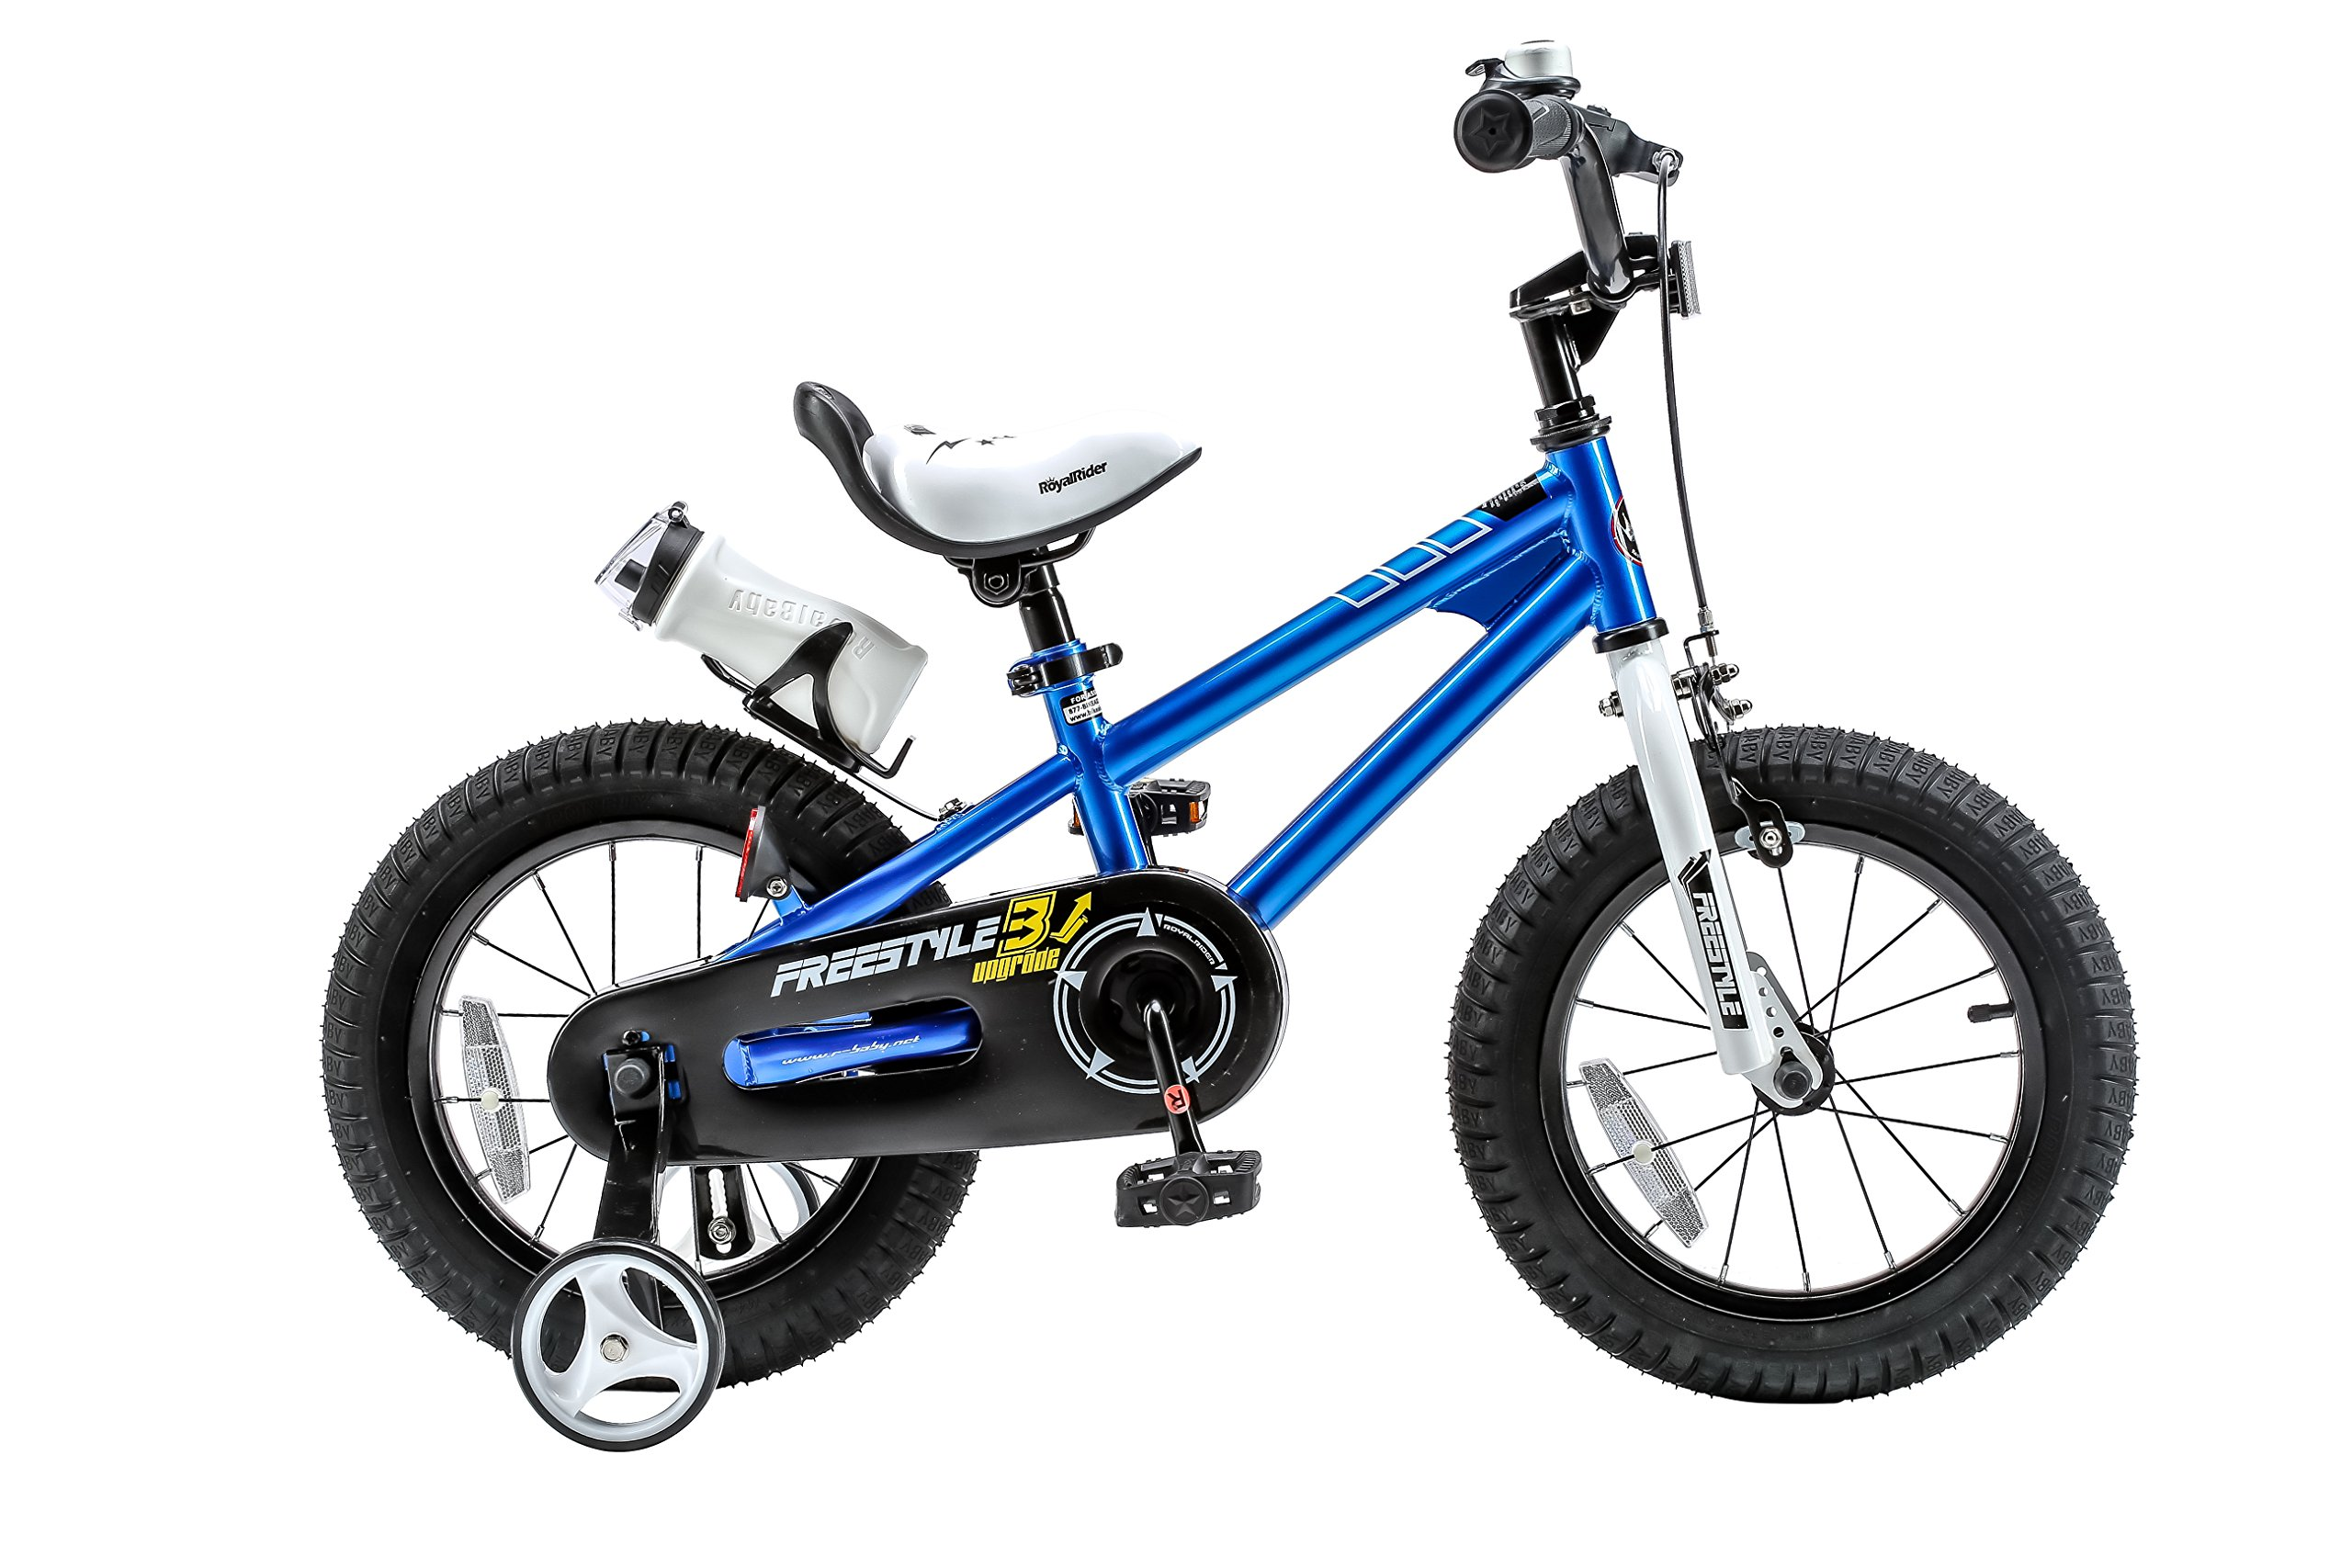 Royalbaby RB16B-6B BMX Freestyle Kids Bike, Boy's Bikes and Girl's Bikes with training wheels, Gifts for children, 16 inch wheels, Blue by Royalbaby